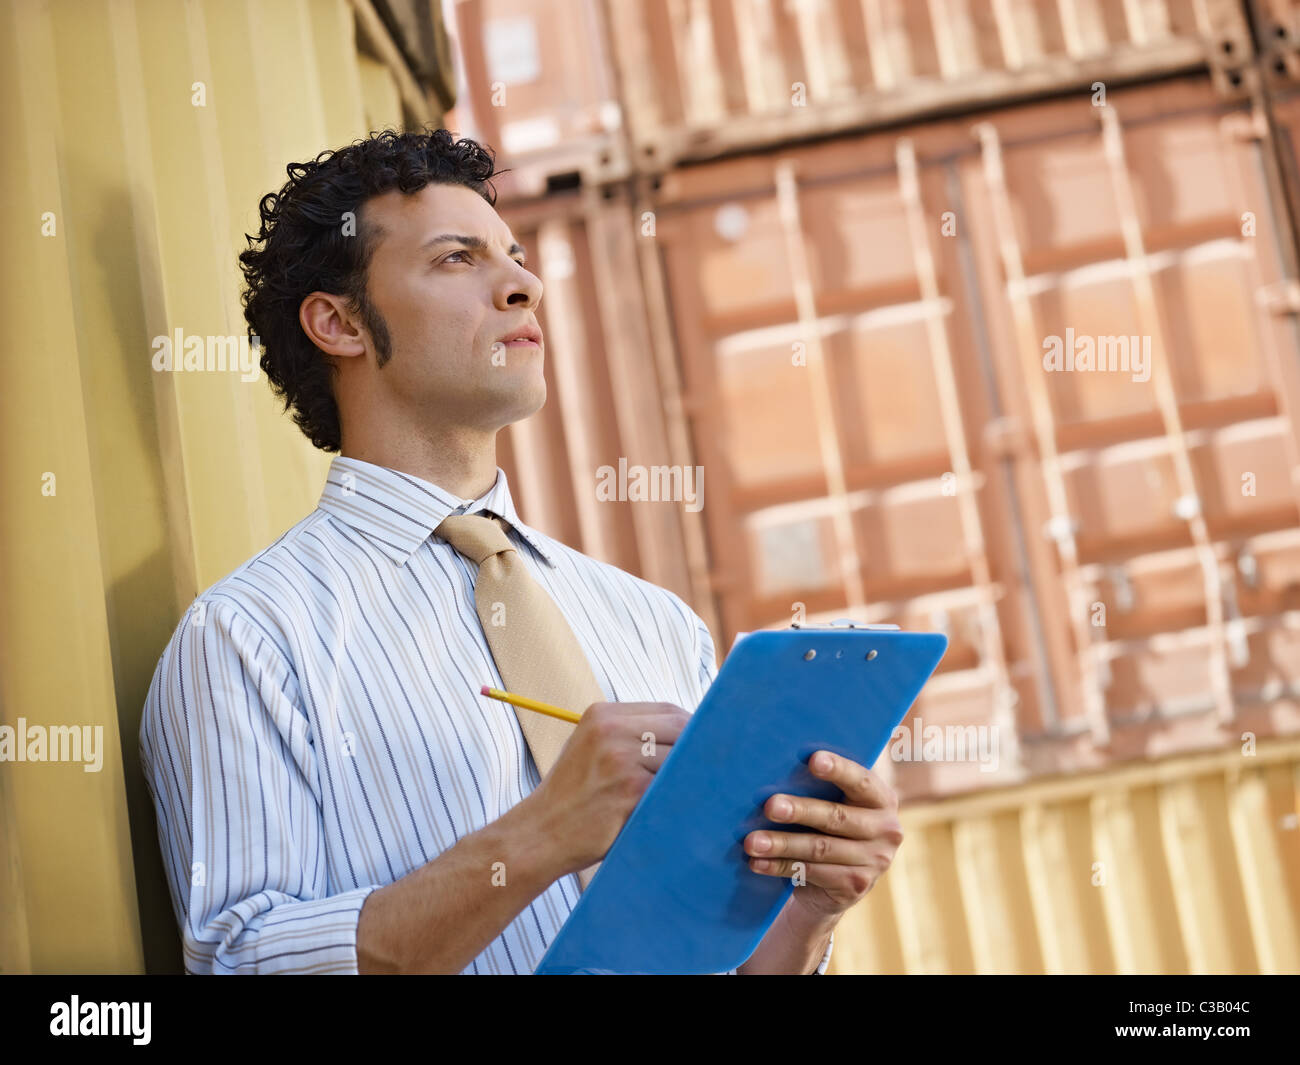 portrait of mid adult businessman leaning on cargo container and looking up. Horizontal shape, side view, copy space - Stock Image